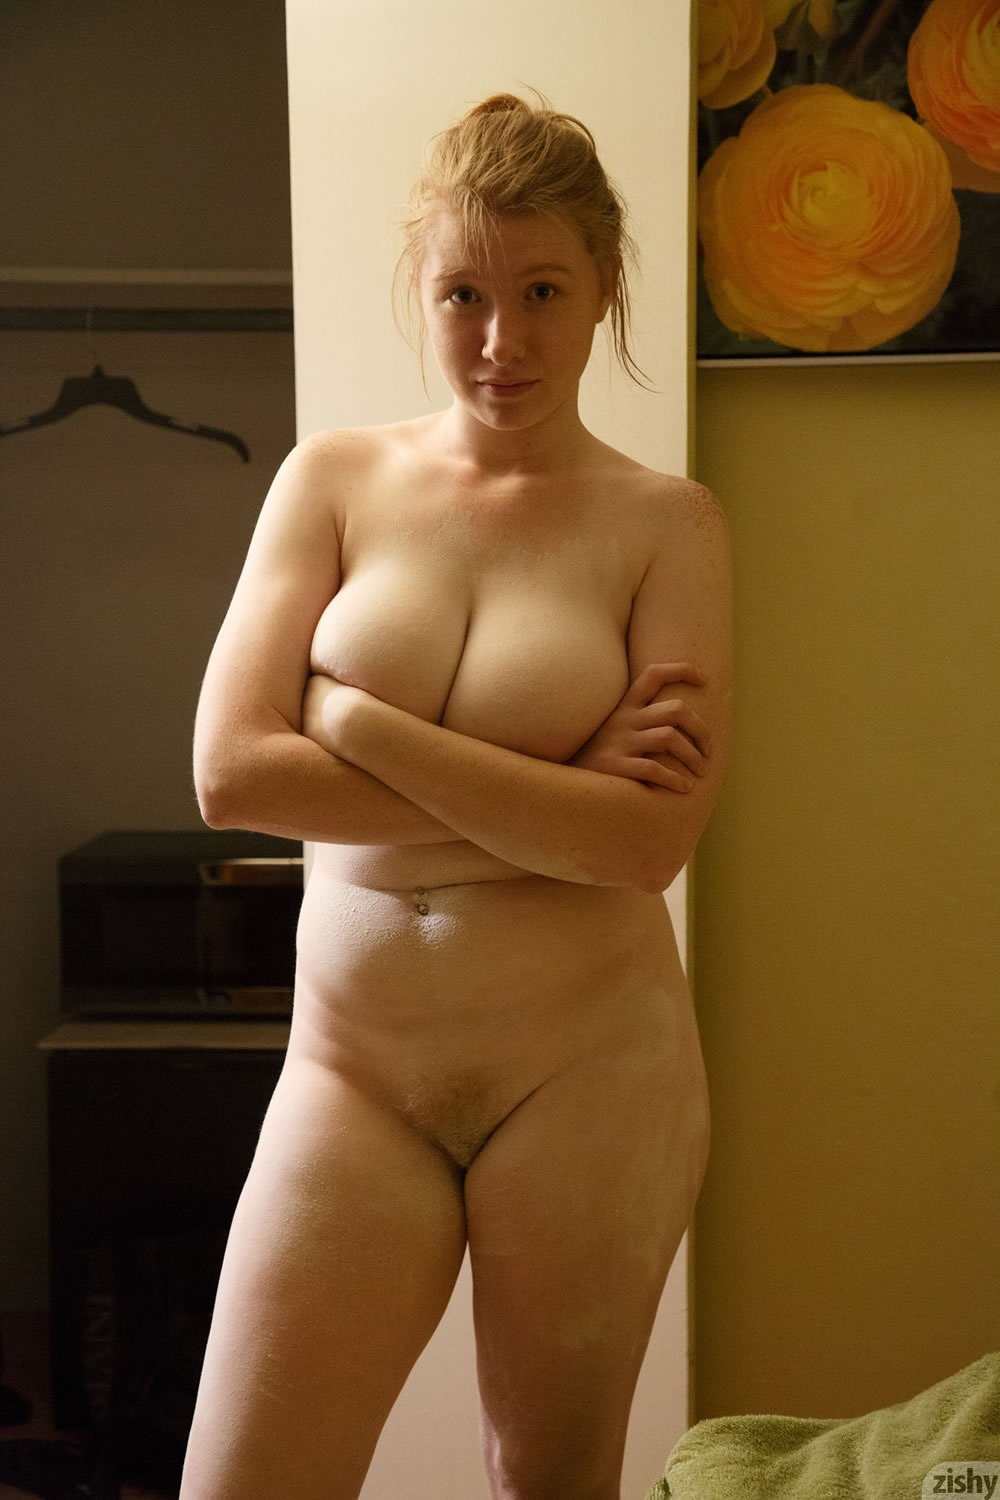 Gorgeous redhead nude